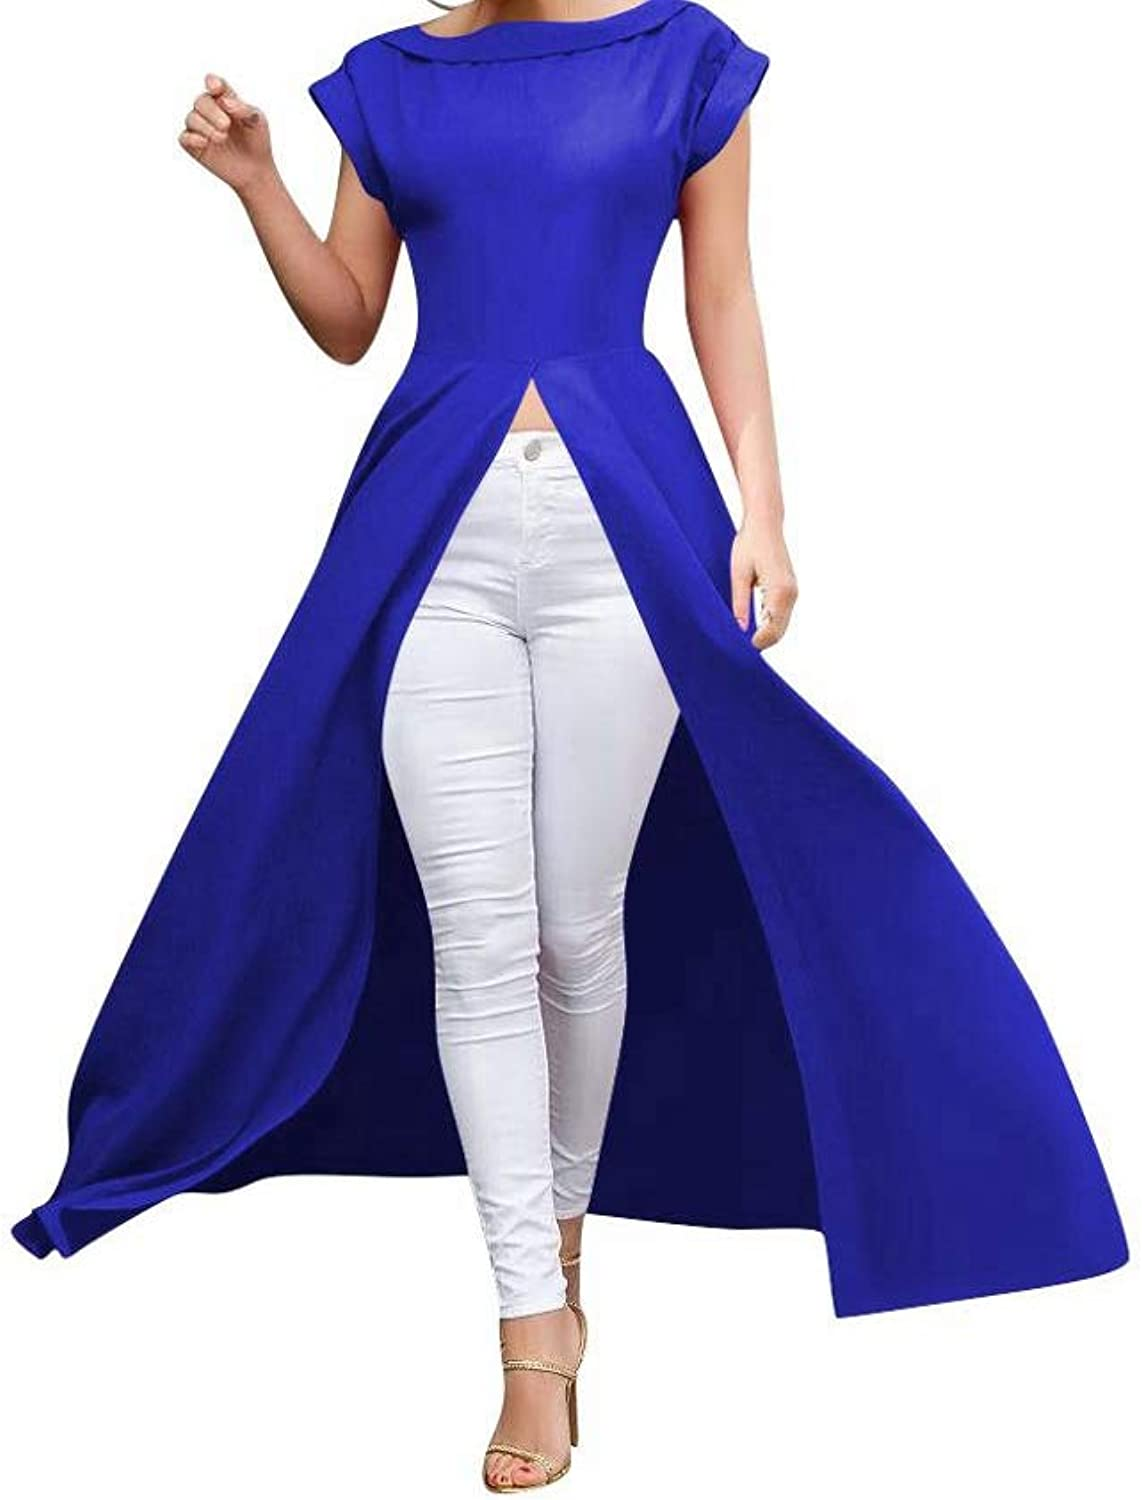 Dress Front High Split Long Tshirt Short Sleeve Women Round Collar ALine XXL